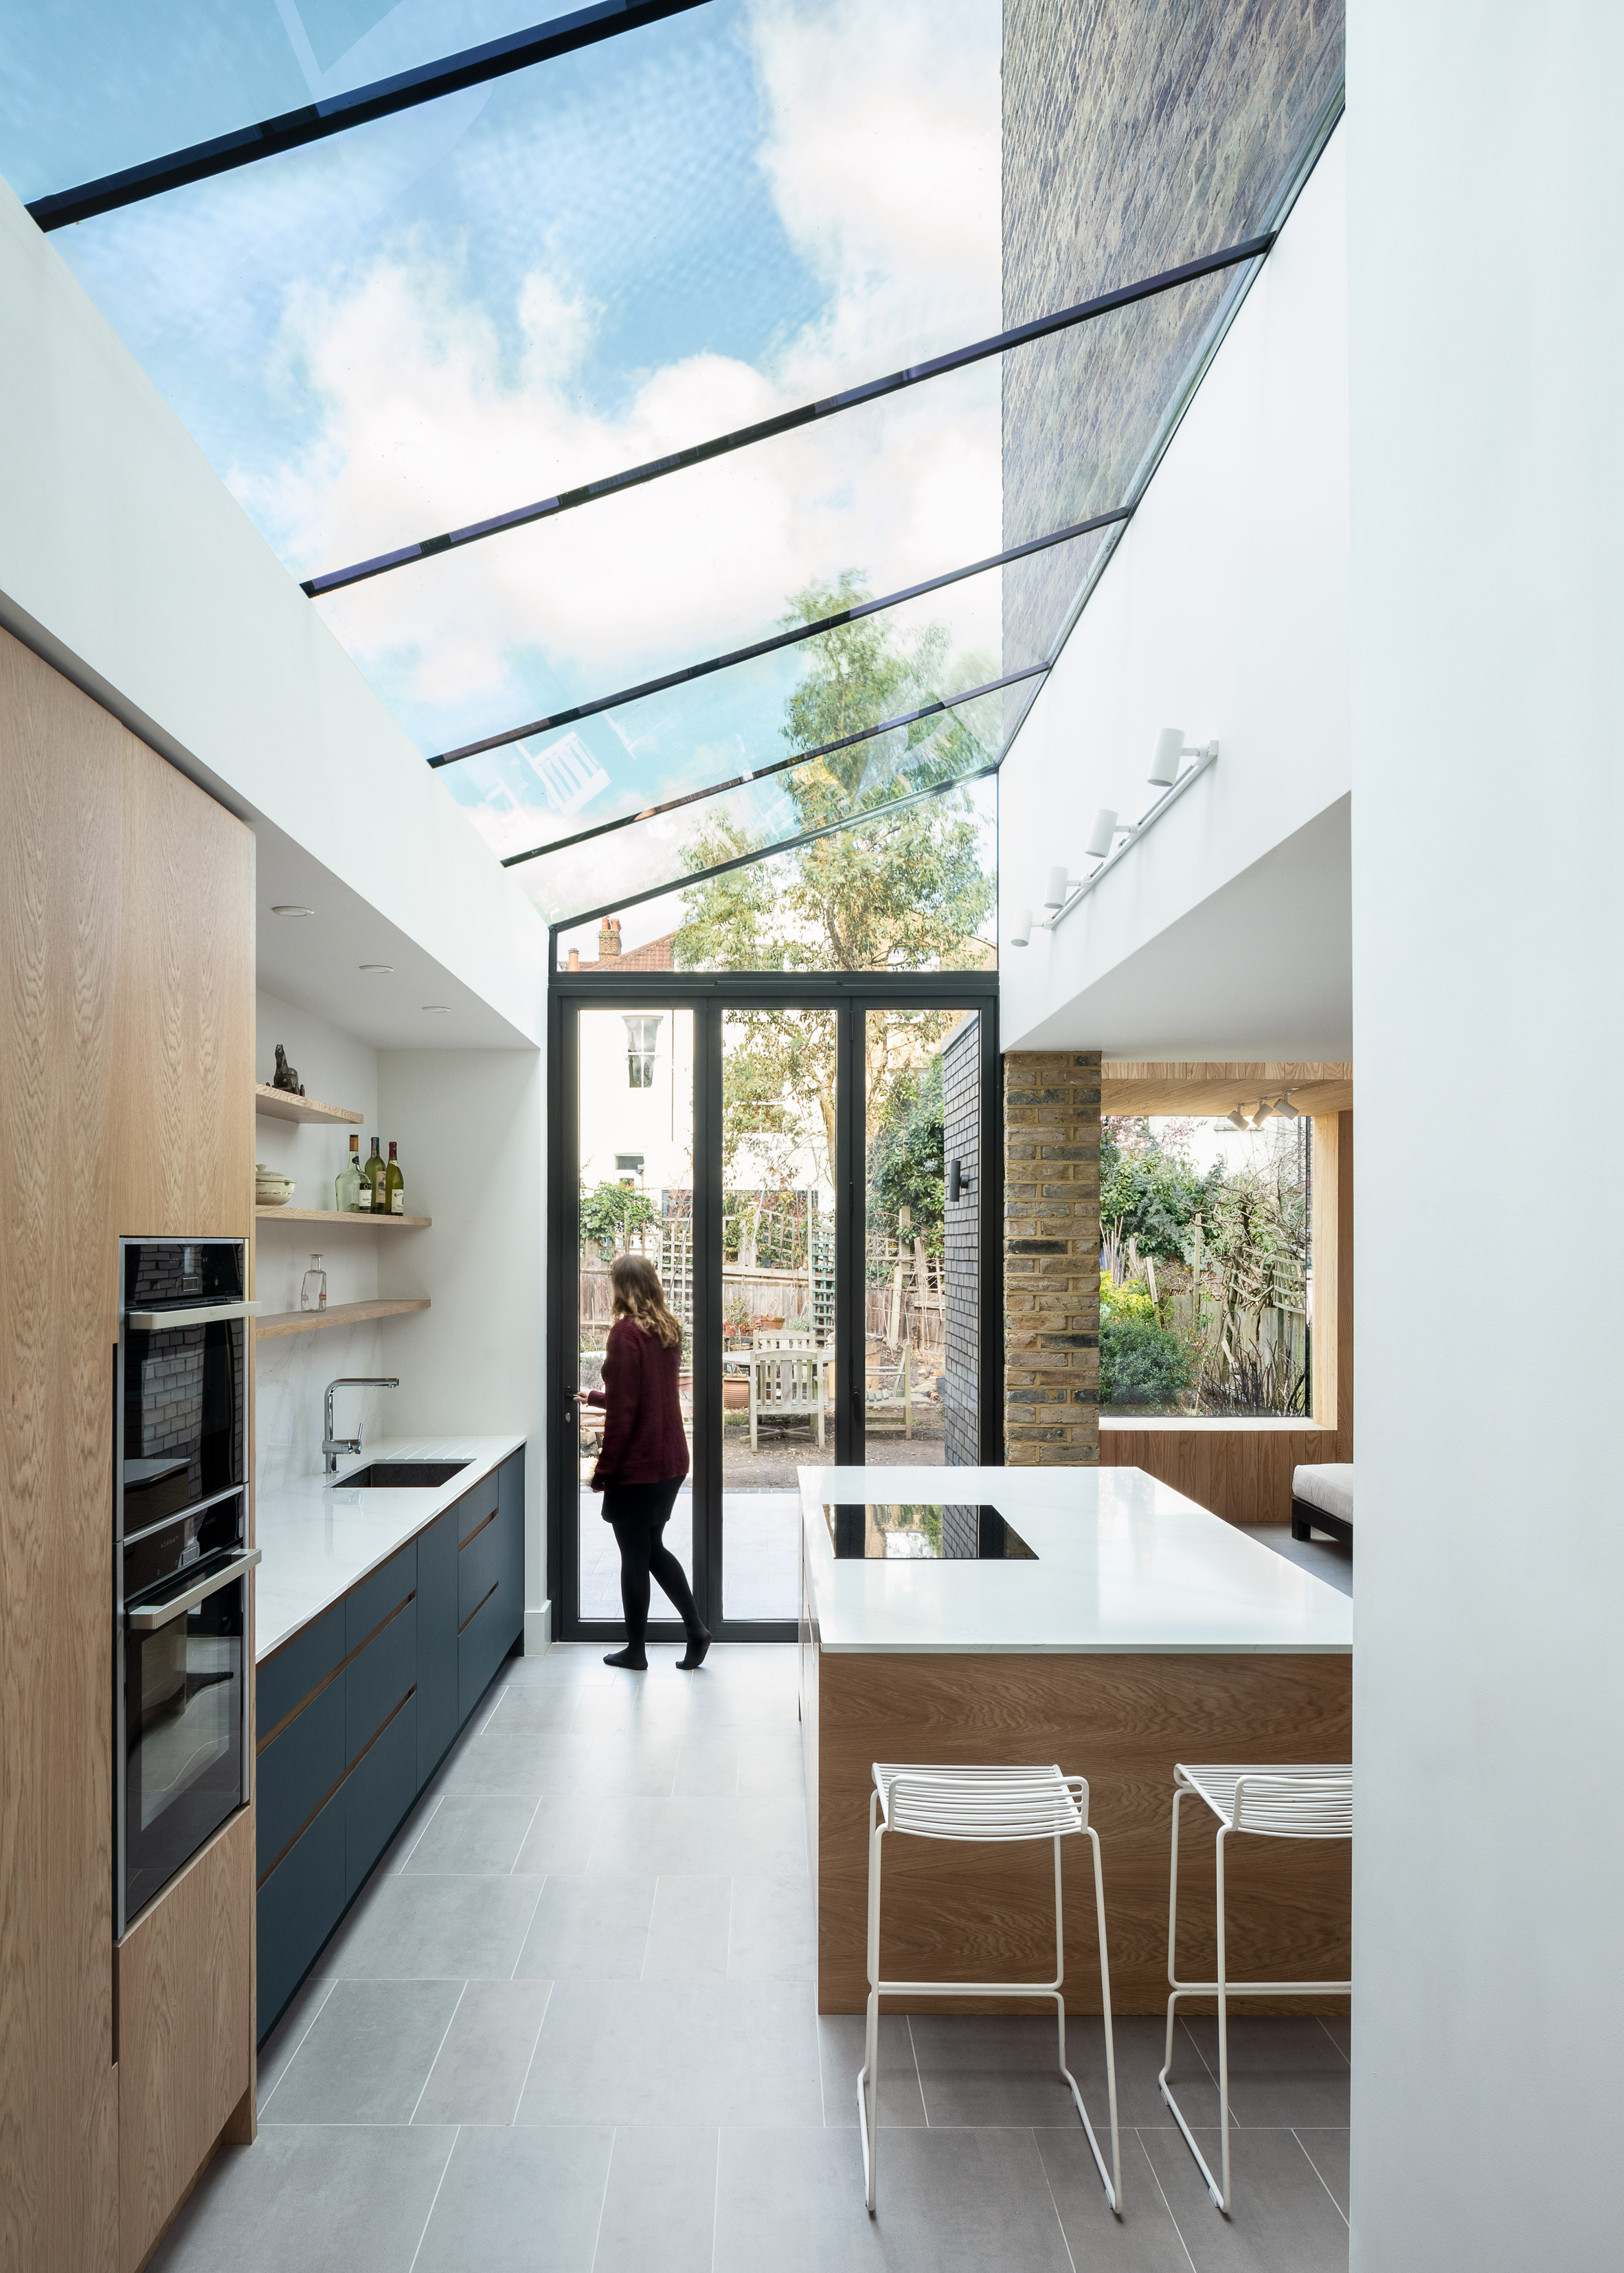 snug-house-proctor-and-shaw-architects-residential-extension-london-uk-england_dezeen_2364_col_15.jpg